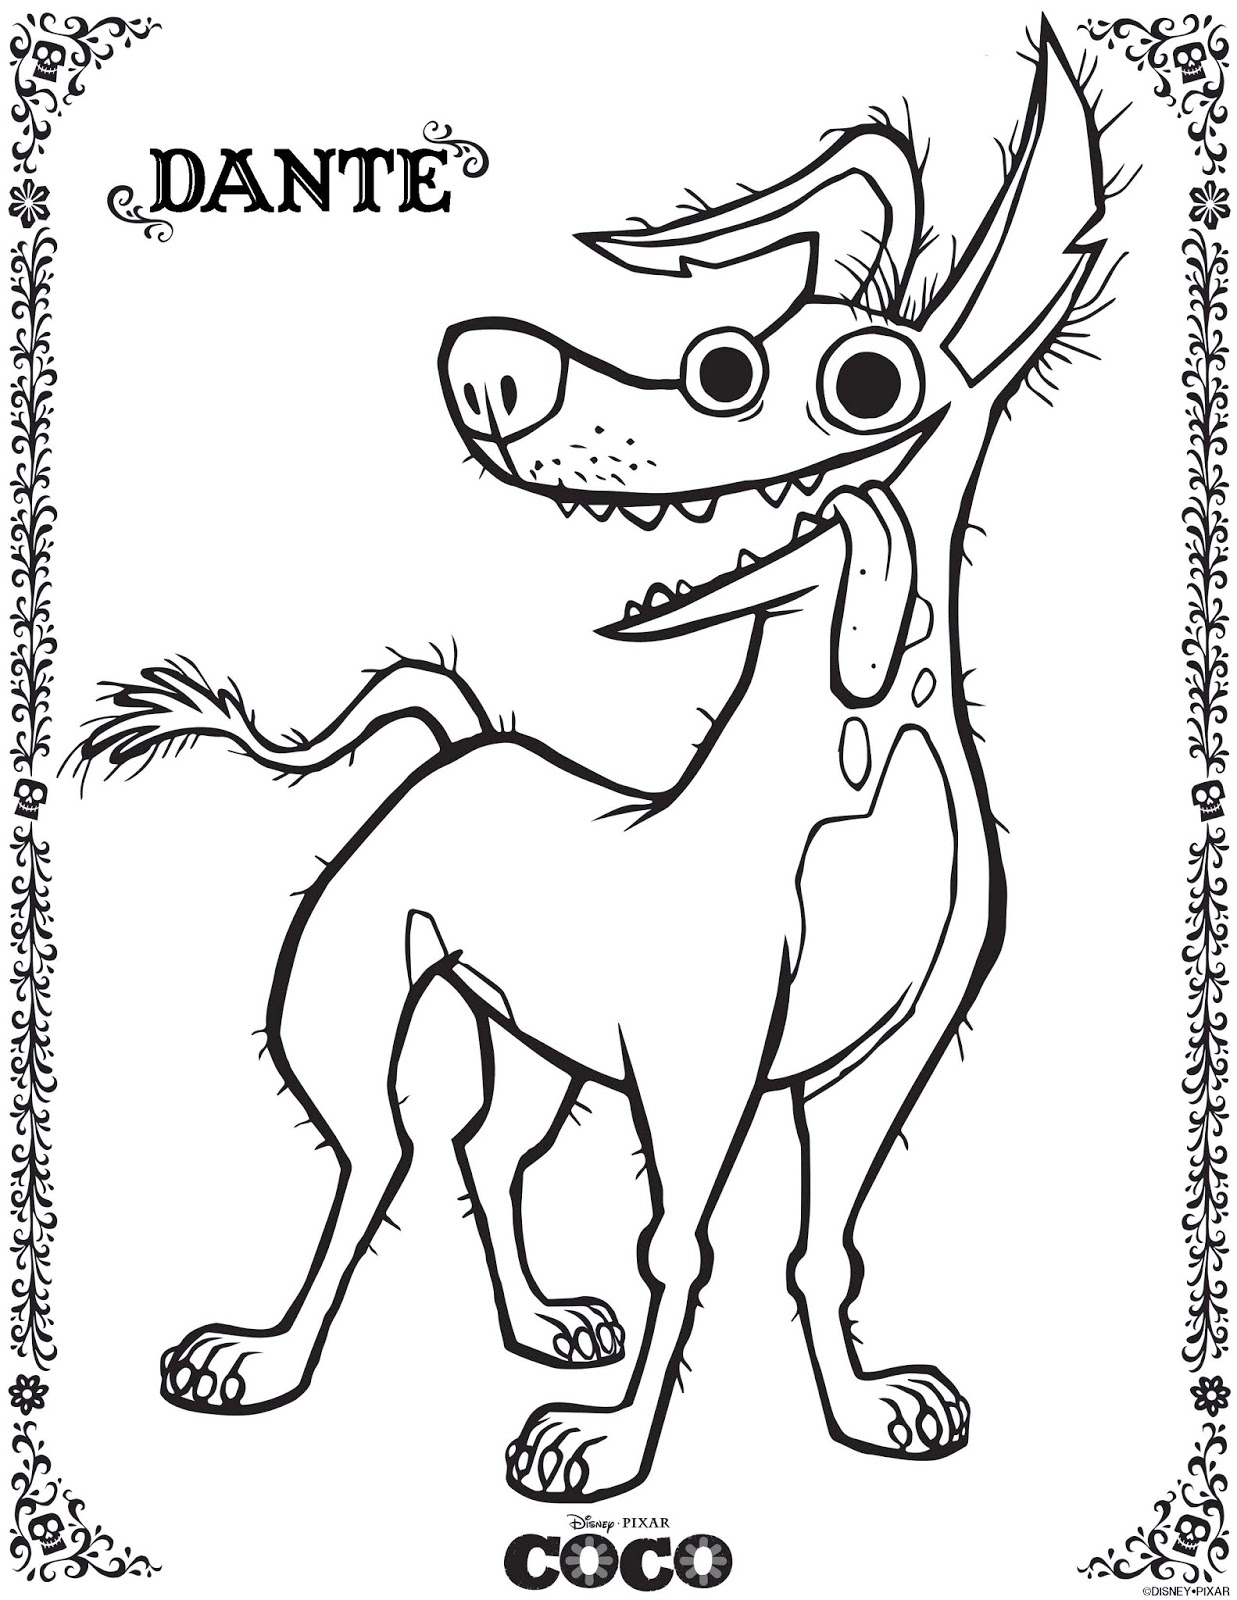 dante he dog coco coloring pages from disney pixar movie